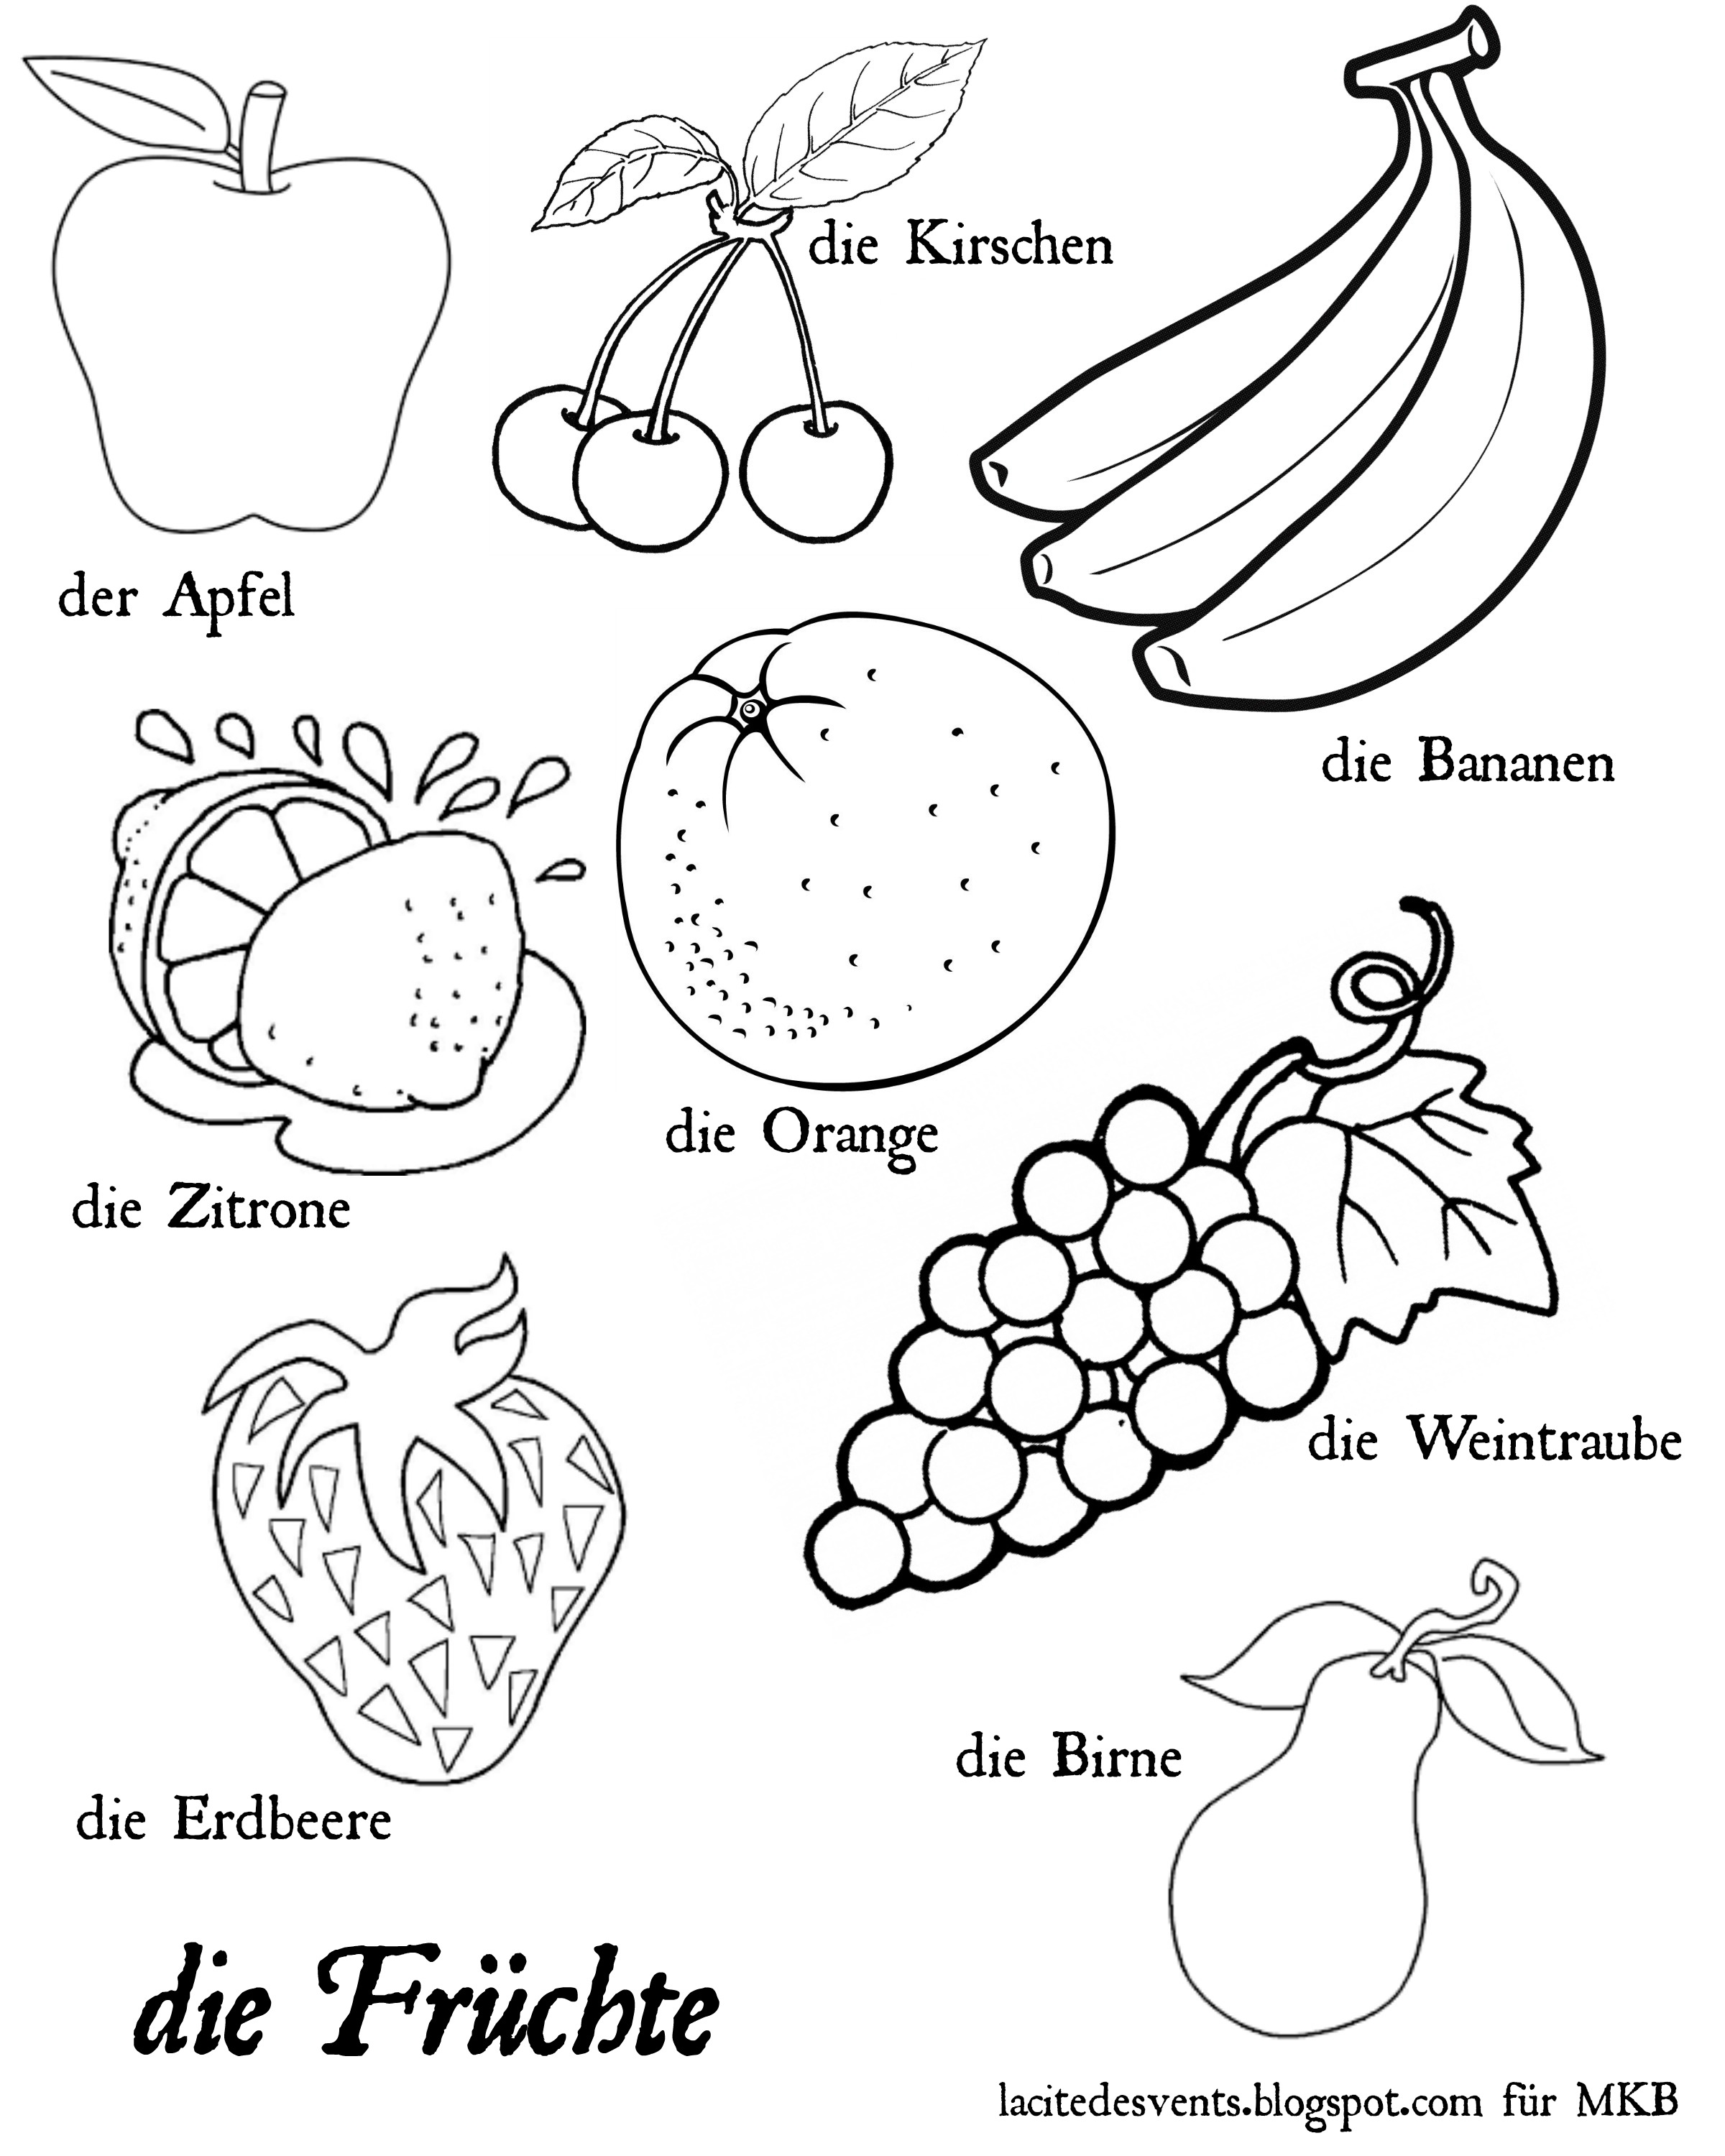 Multilingual Printables: Fruits and Vegetables in 7 Languages